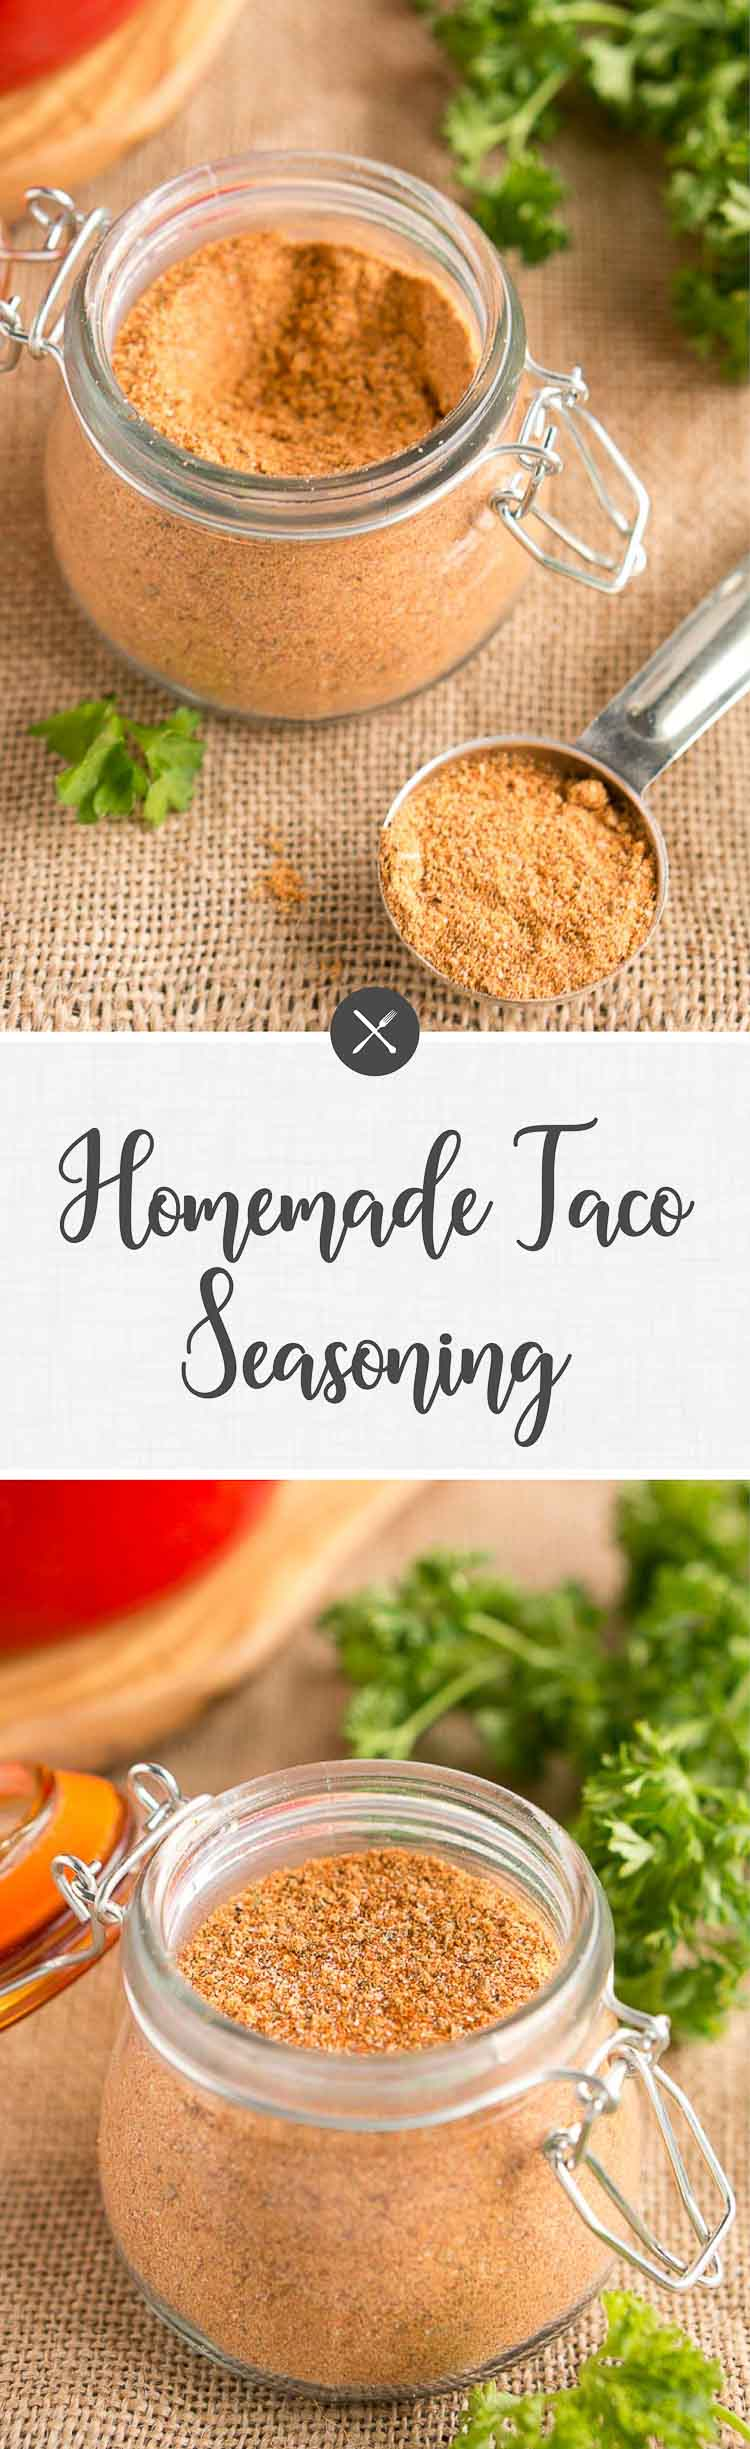 Homemade taco seasoning is easy to make at home, for much less money than the cost of packaged taco seasoning. It is great for your favorite Mexican meals!